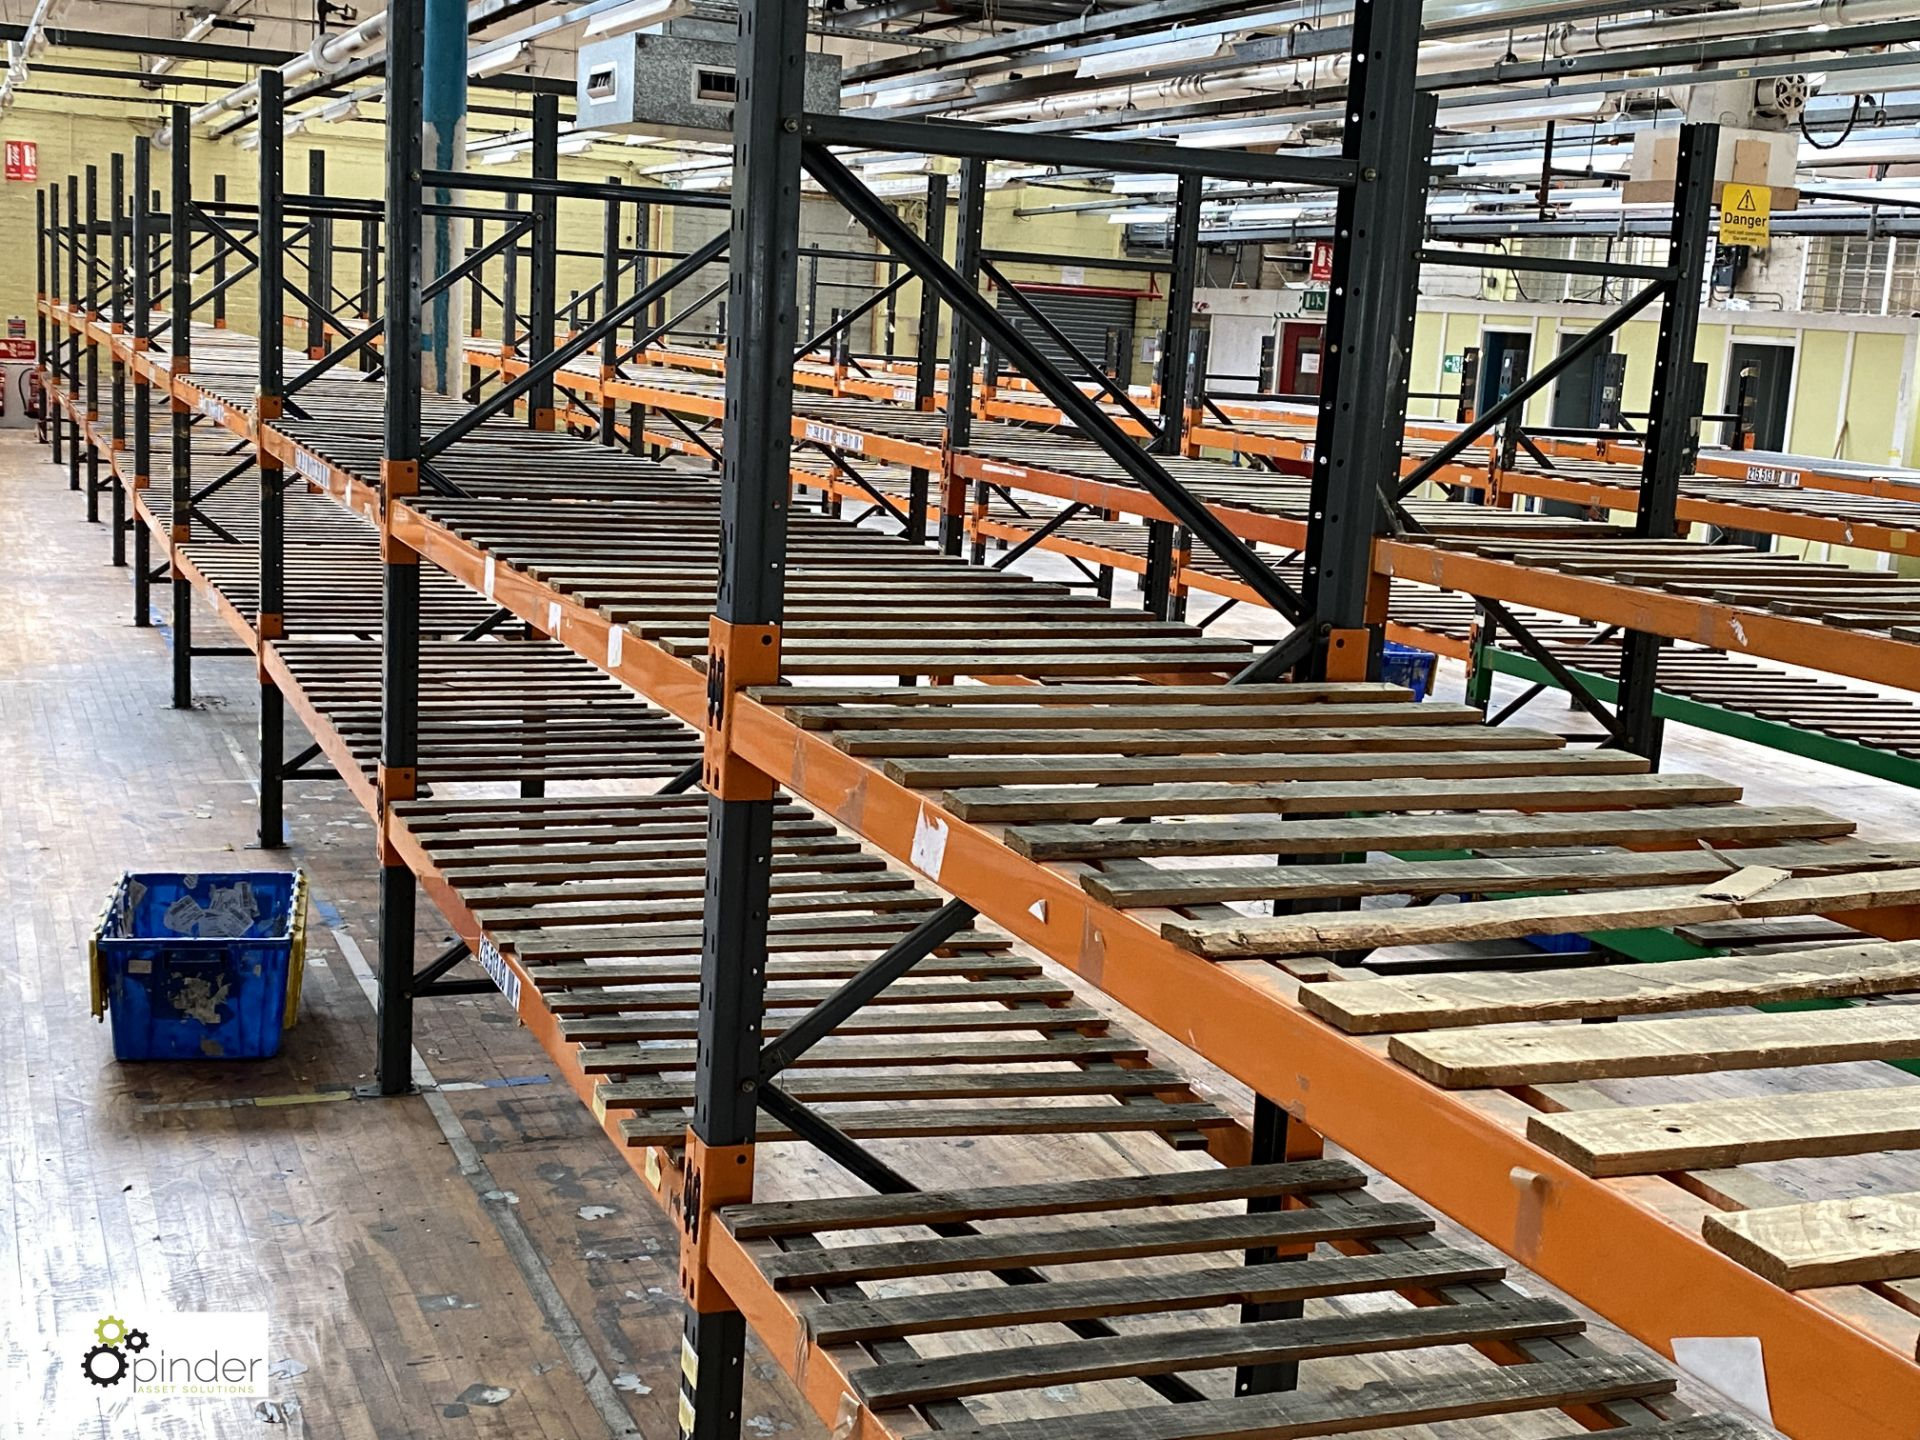 12 bays Dexion Speedlock boltless Racking, comprising 12 uprights 2440mm x 910mm, 1 upright 1835mm x - Image 4 of 5